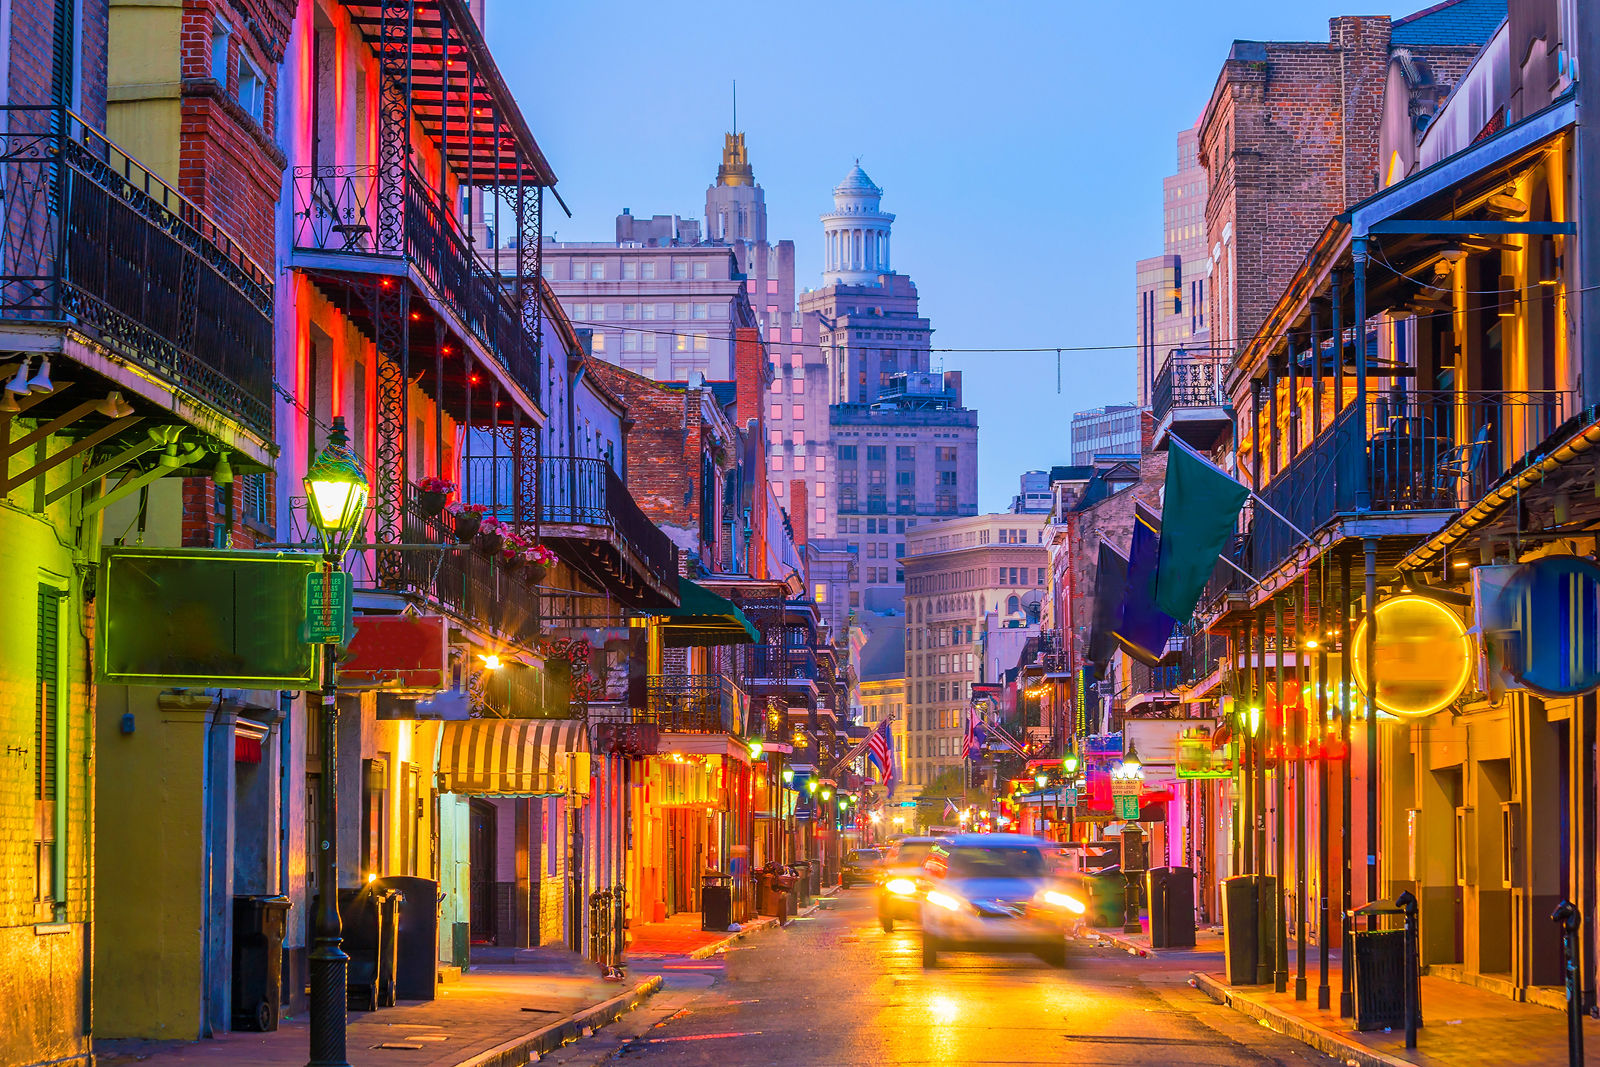 New Orleans comes in at No. 9. The city, known for its French and Spanish Creole heritage, recently celebrated its 300th birthday with a visit from the King and Queen of Spain. (Getty Images/Thinkstock)